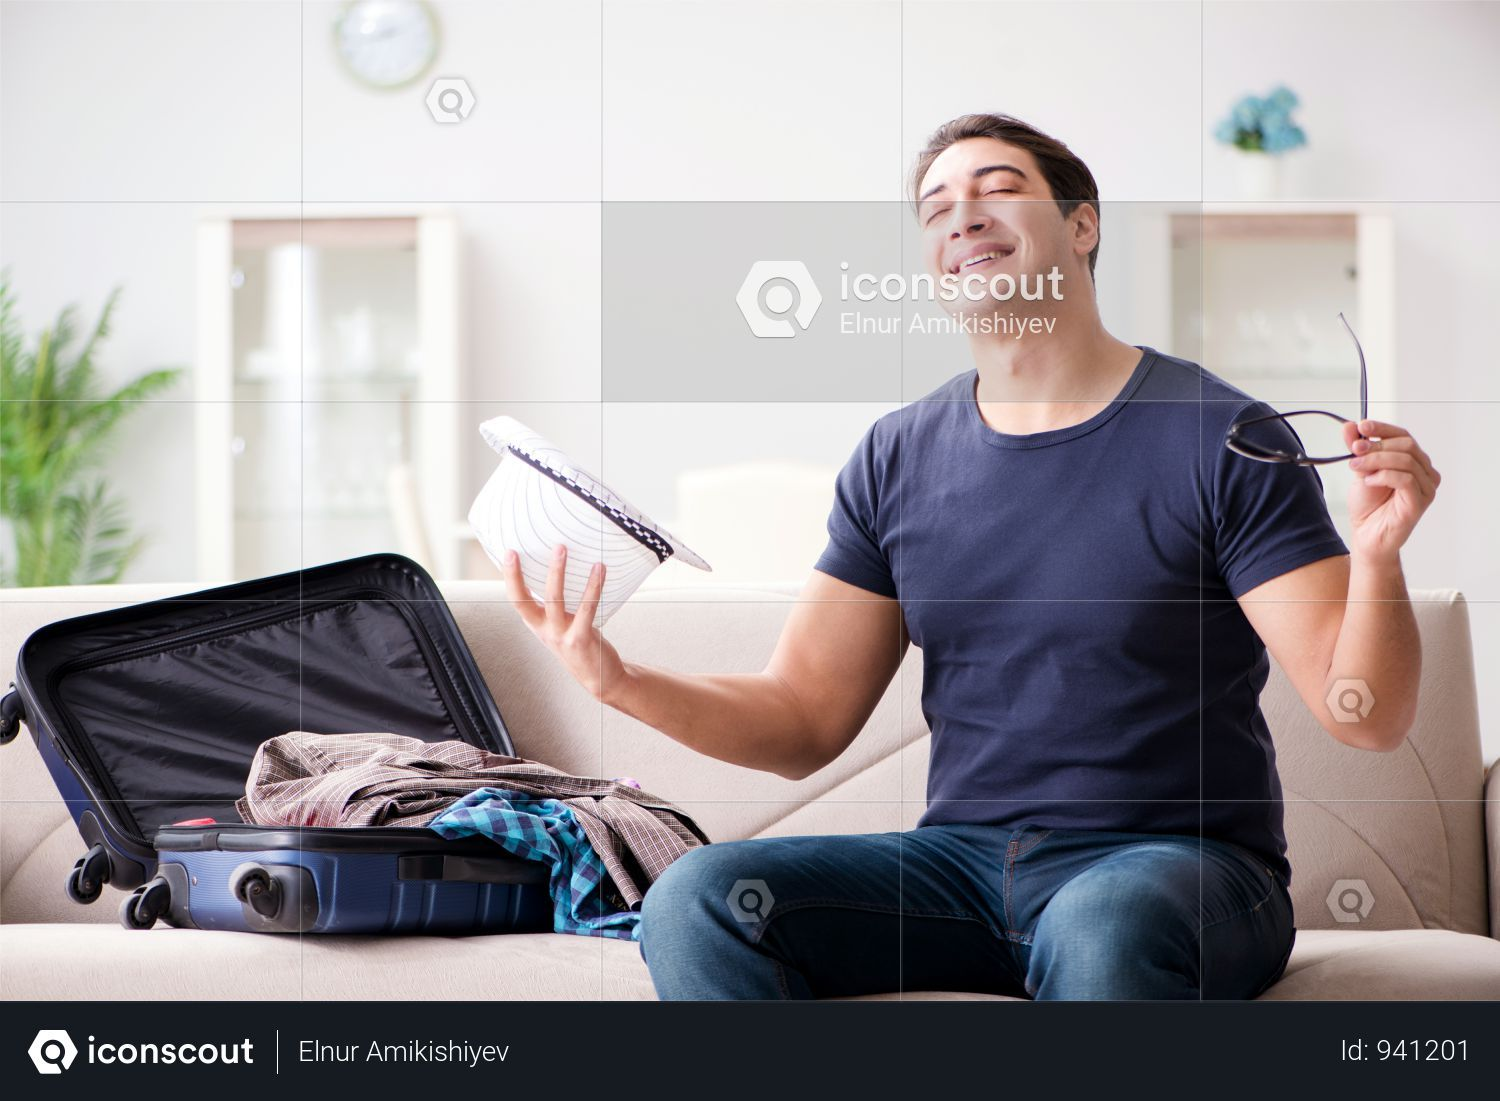 Premium Man Going On Vacation Packing His Suitcase Photo Download In Png Jpg Format Vacation Packing Man Photo